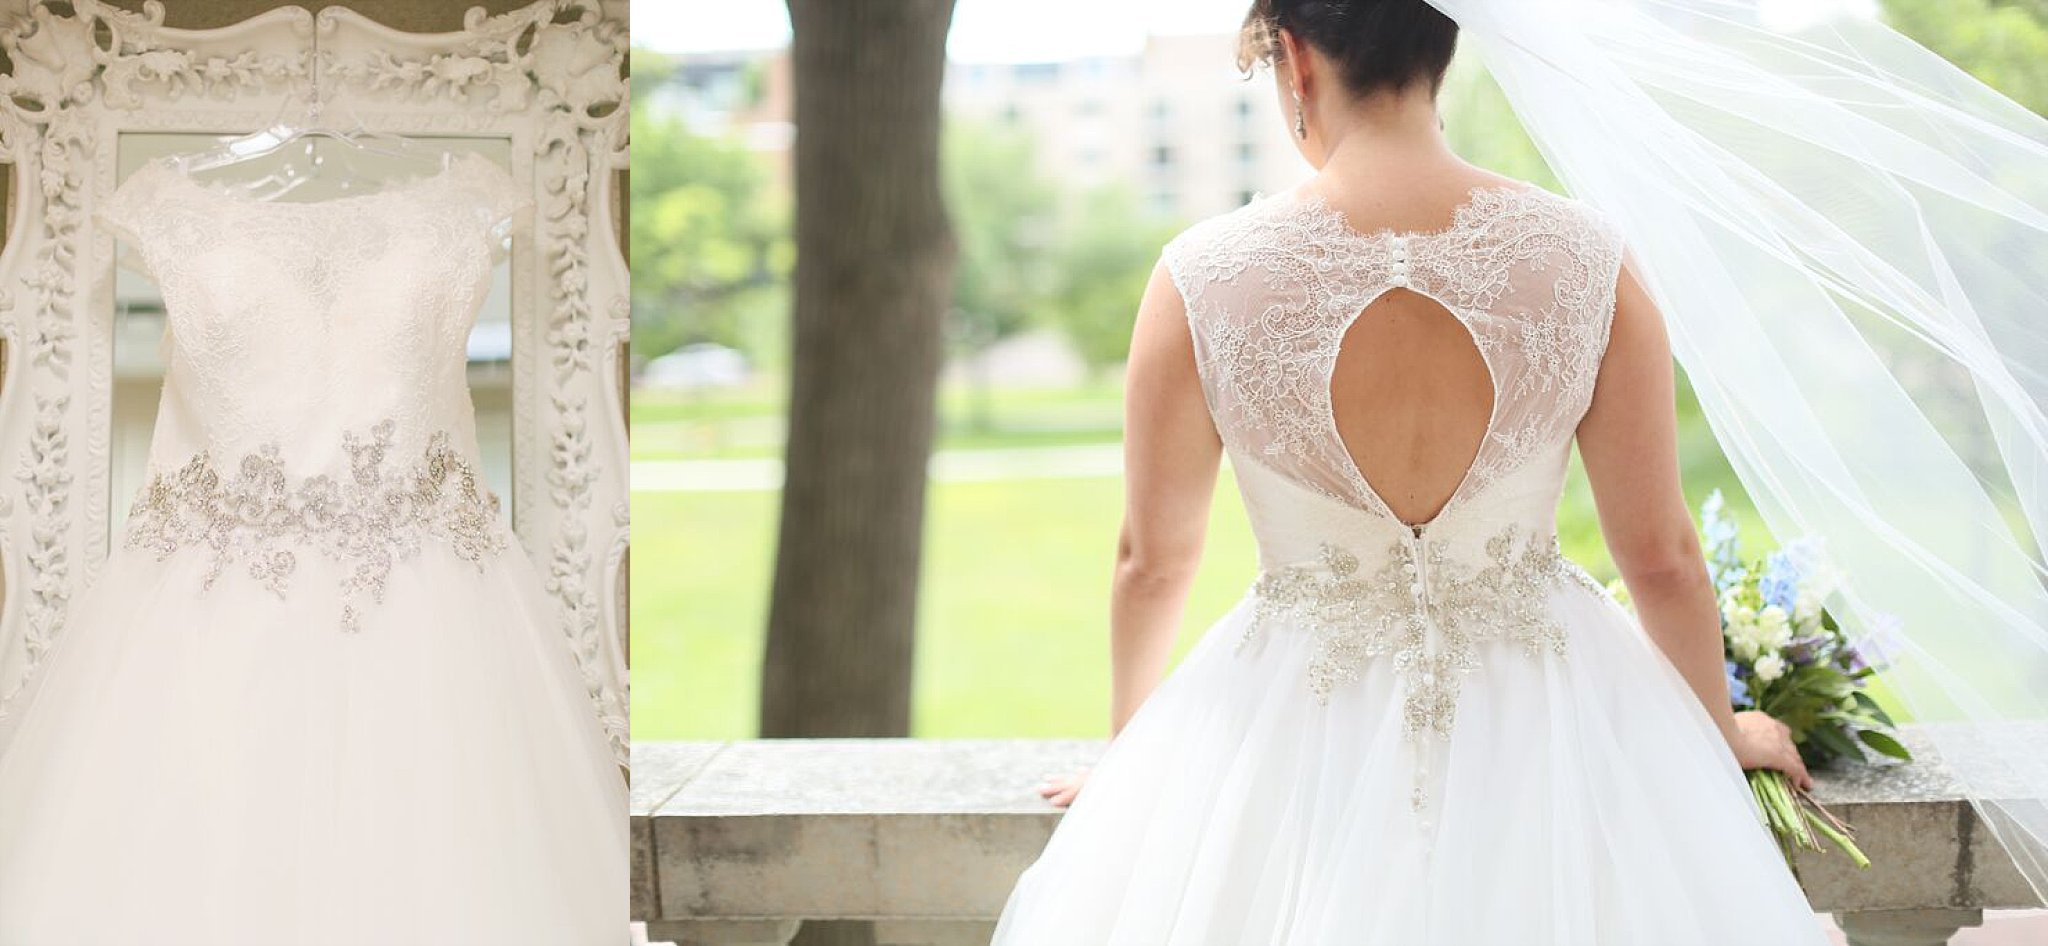 Bridal Gown, Minneapolis, Life and Style Photography, Jessica Wonders Events